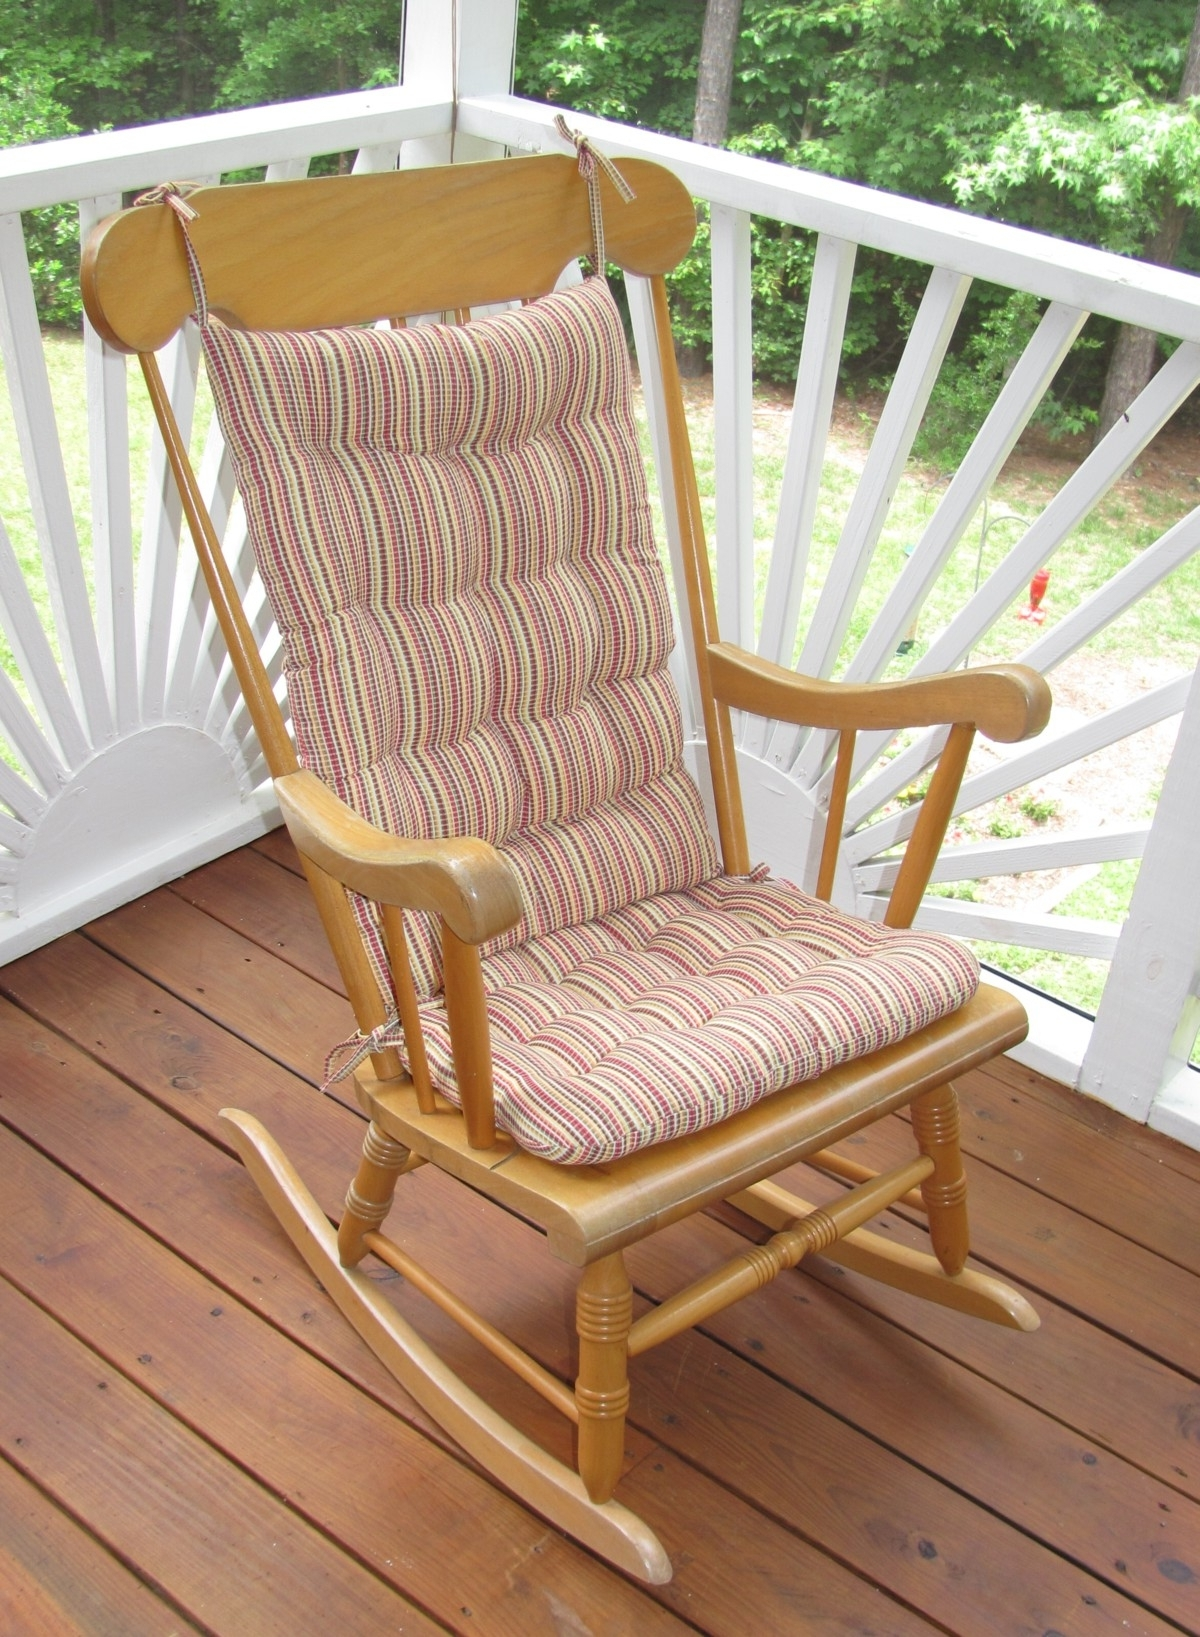 2017 Rocking Chair Cushions For Outdoor Regarding Outdoor Rocking Chair Cushions Type : Beautiful Outdoor Rocking (View 1 of 15)